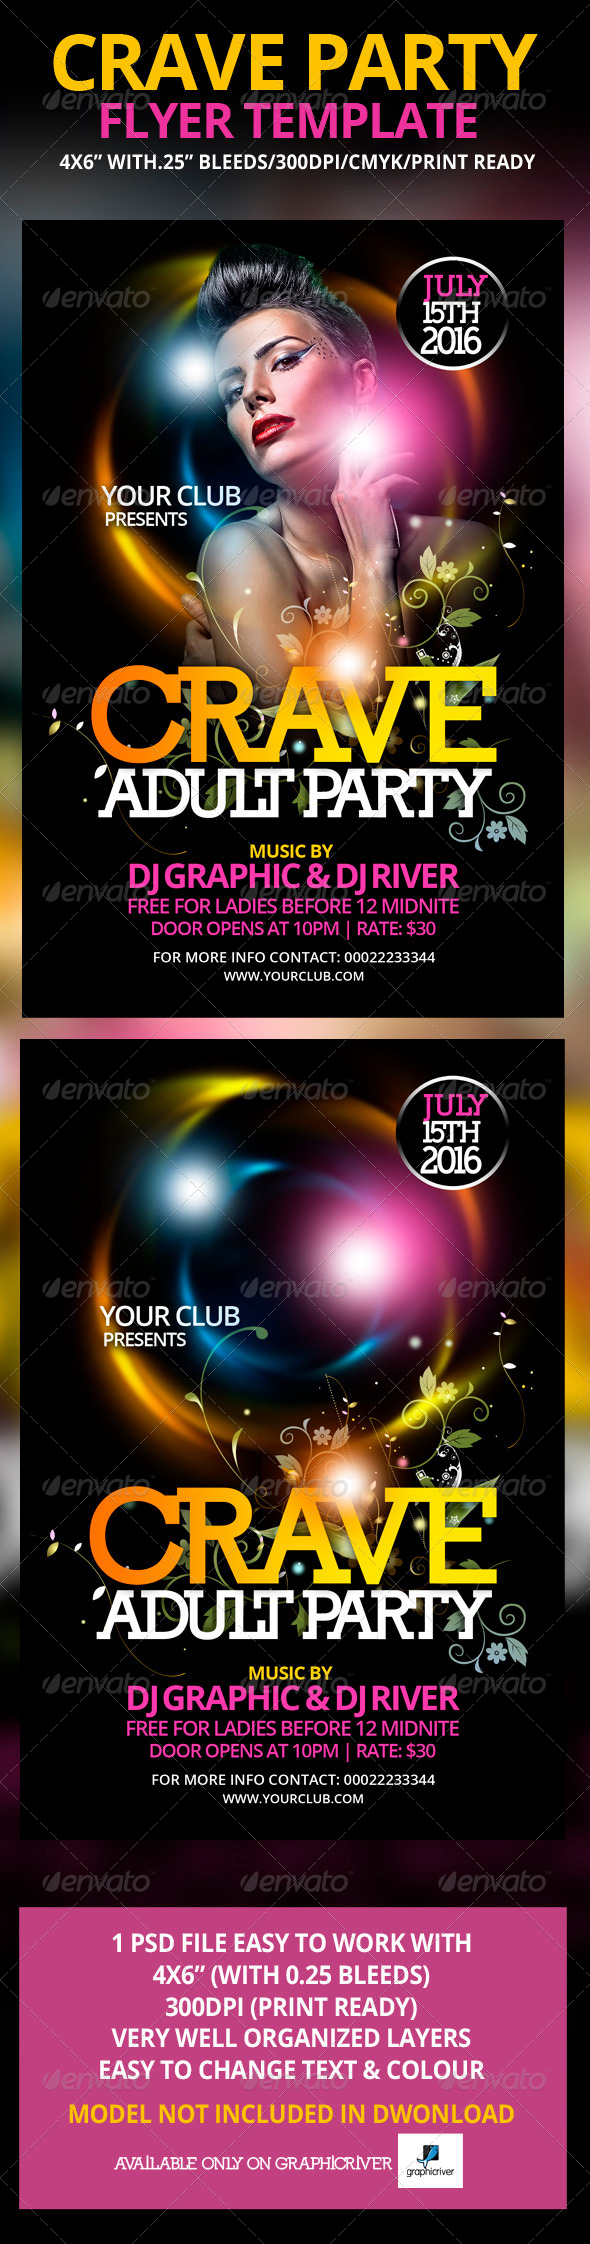 Crave Party Flyer Template - Flyers Print Templates